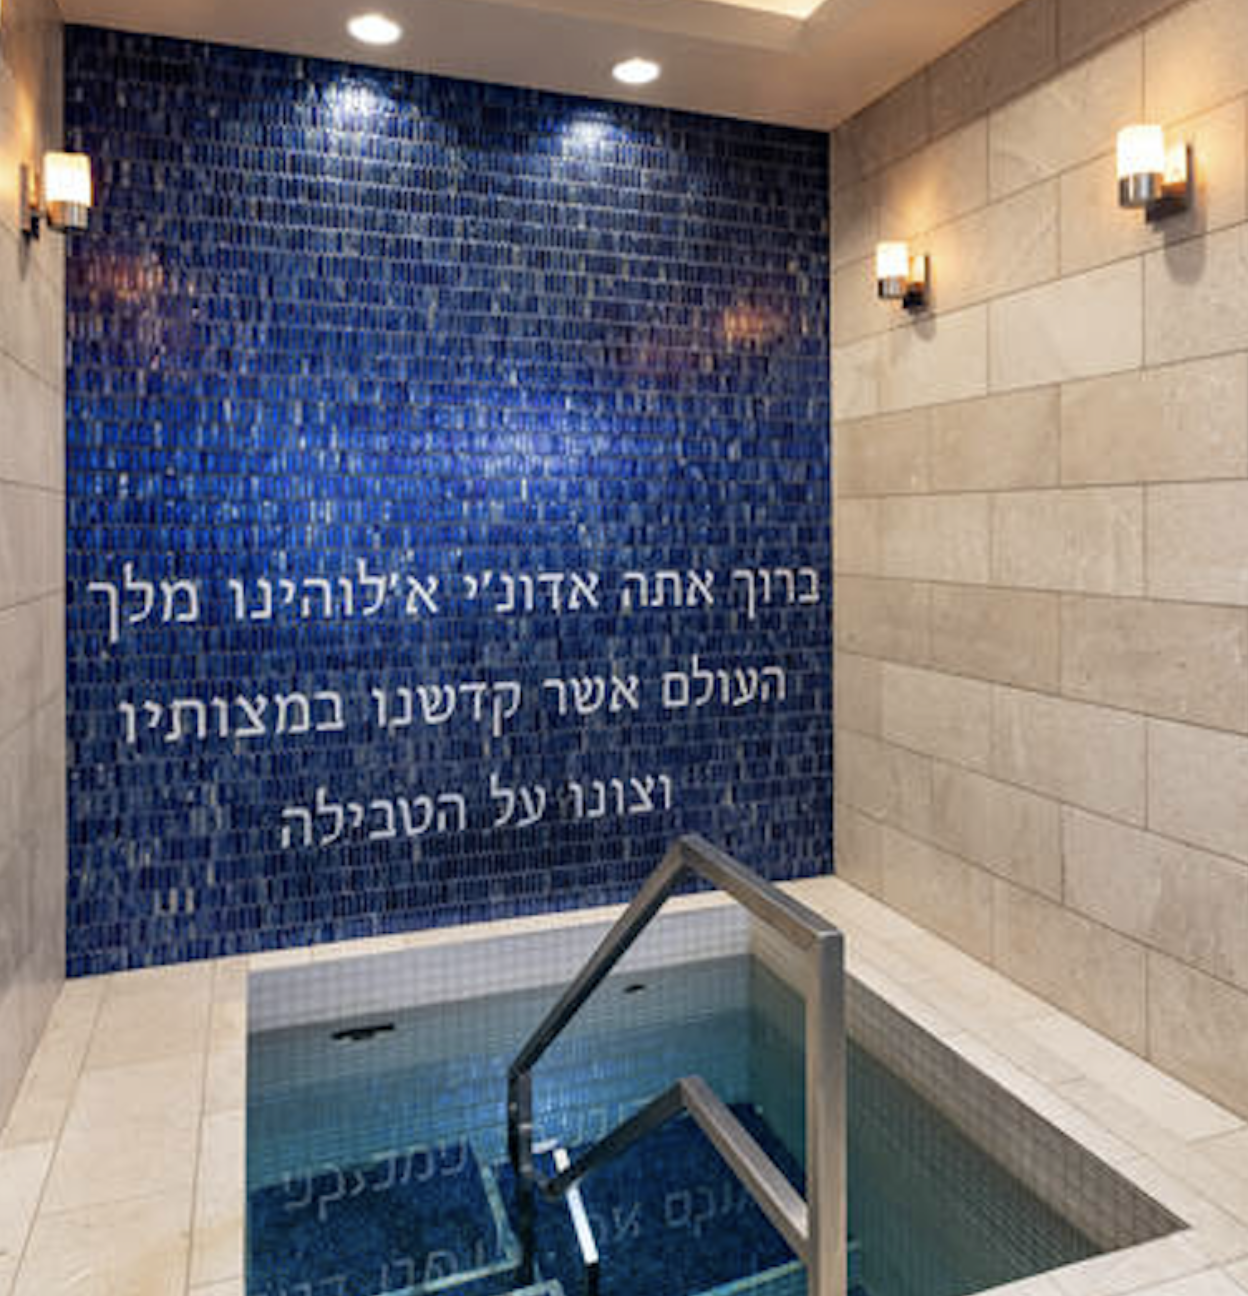 """<span class=""""slider_title"""">                                     The GoldmanMikvahis a state-of-the-art, beautiful and luxuriously appointed facility located in Congregation Beth Tefillah.                                </span>                                                                                                                                                                                       <span class=""""slider_description"""">The mikvah is a pool of living waters, a pristine reservoir of natural rainwater that transforms and restores, a special private space and moment in time that allows a woman to focus on a total immersion of her body, mind and soul, connect with her natural rhythms and discovers a freshness, a renewal that brings new energy and sense of completeness within herself.</span>"""